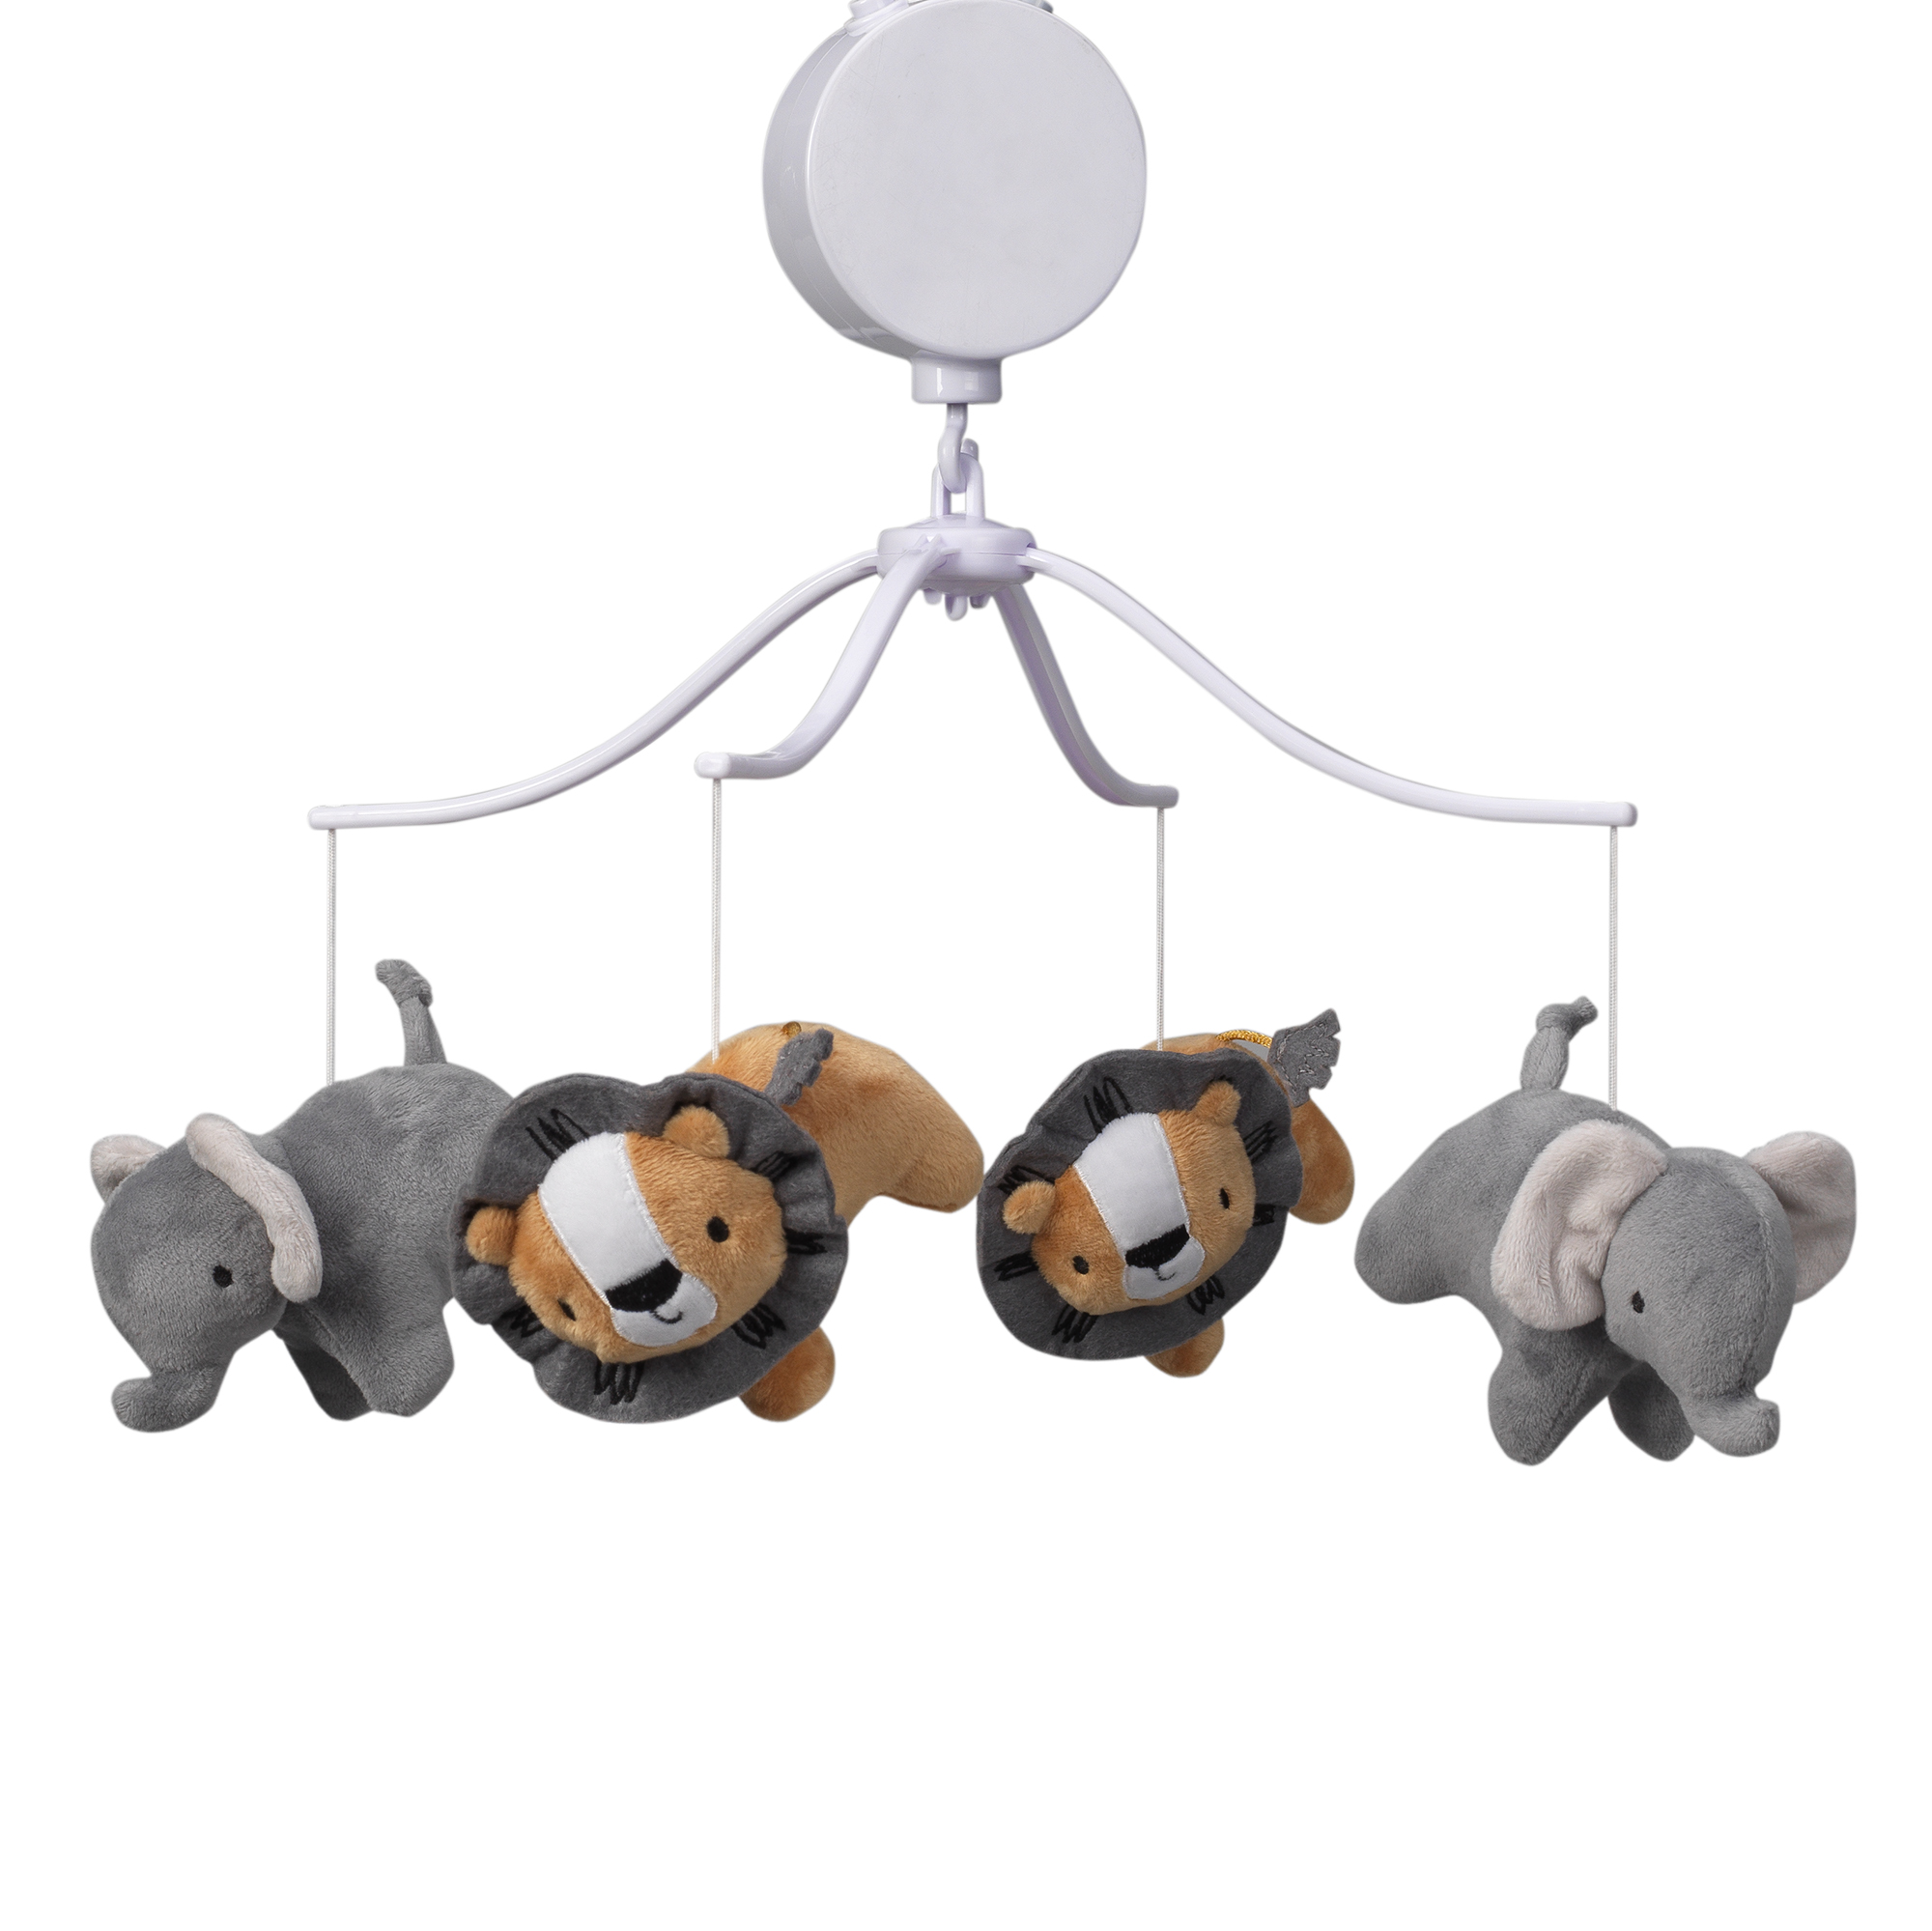 Bedtime Originals Jungle Fun Musical Baby Crib Mobile Gray, Animals, Jungle by Bedtime Originals